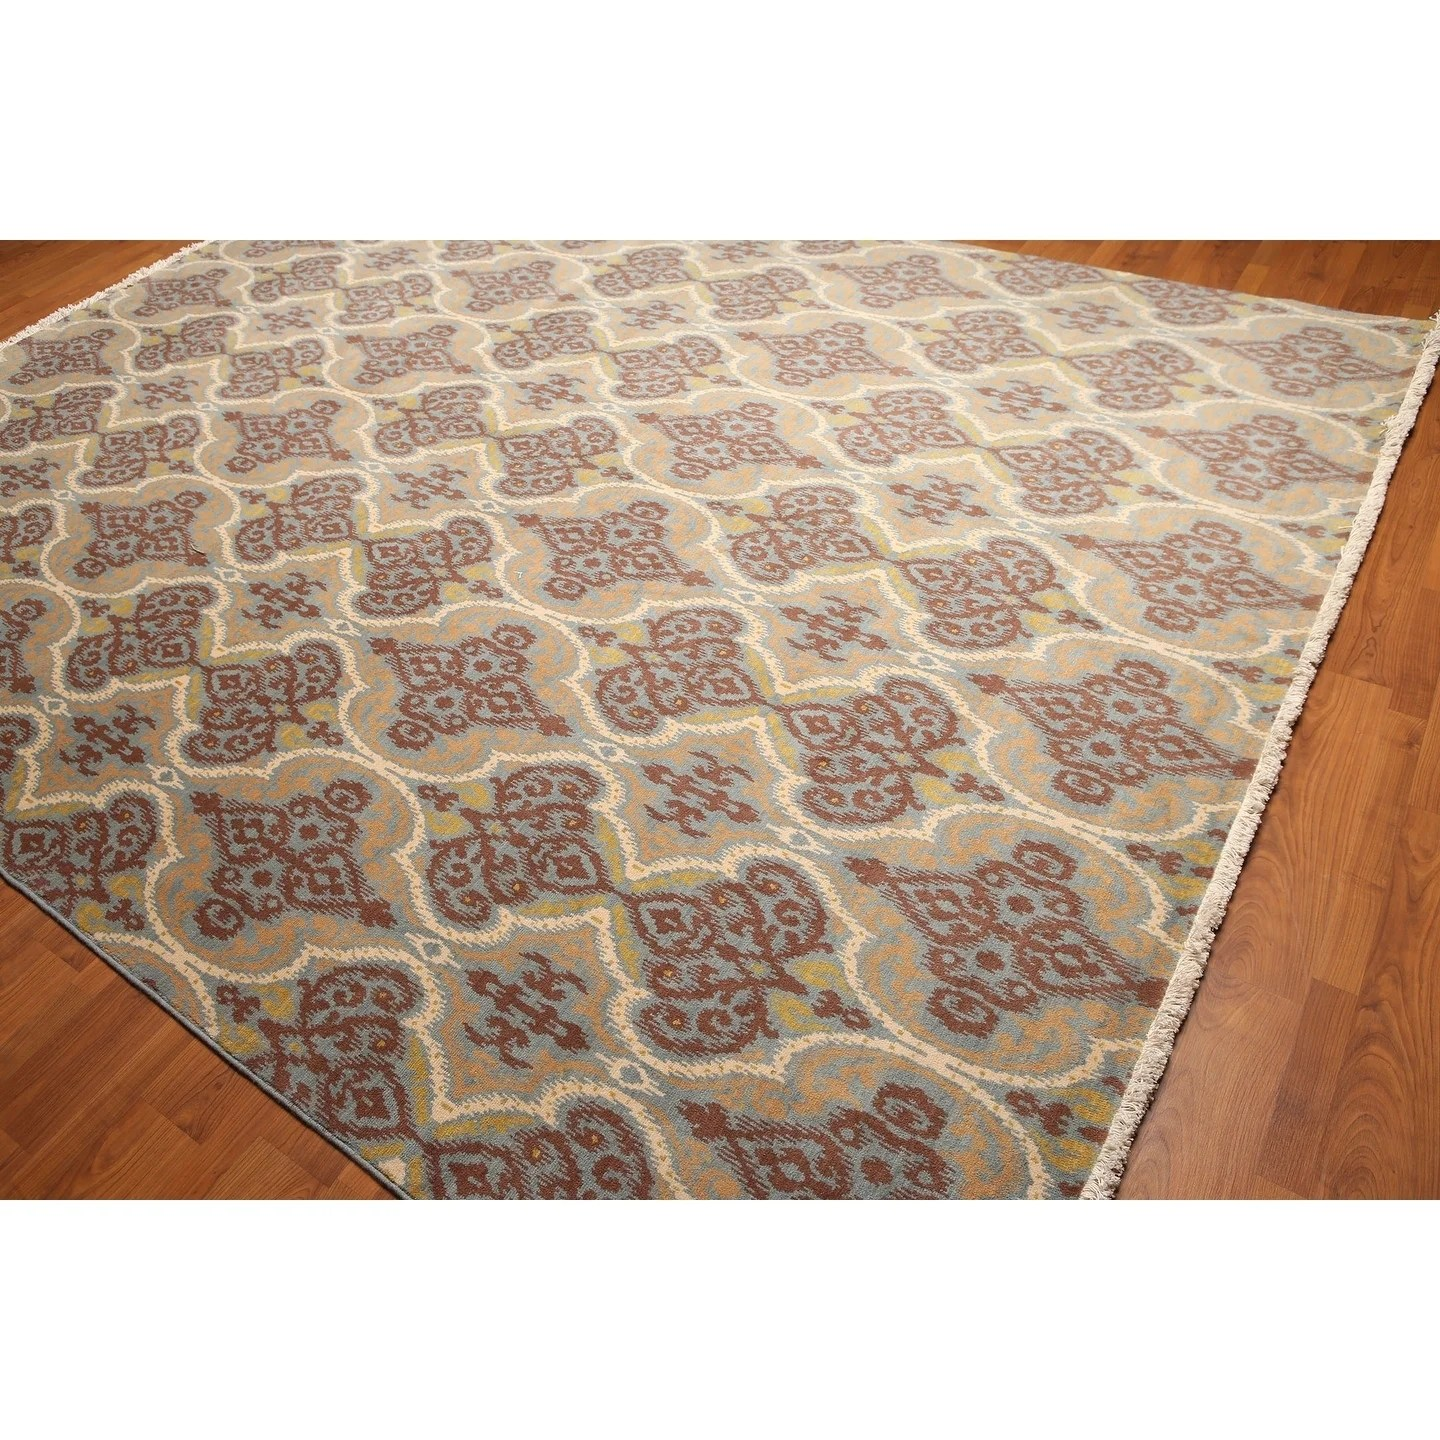 Transitional Full Pile Oriental Hand-Knotted Area Rug - Blue/Gold/Ivory - 9' x 12'